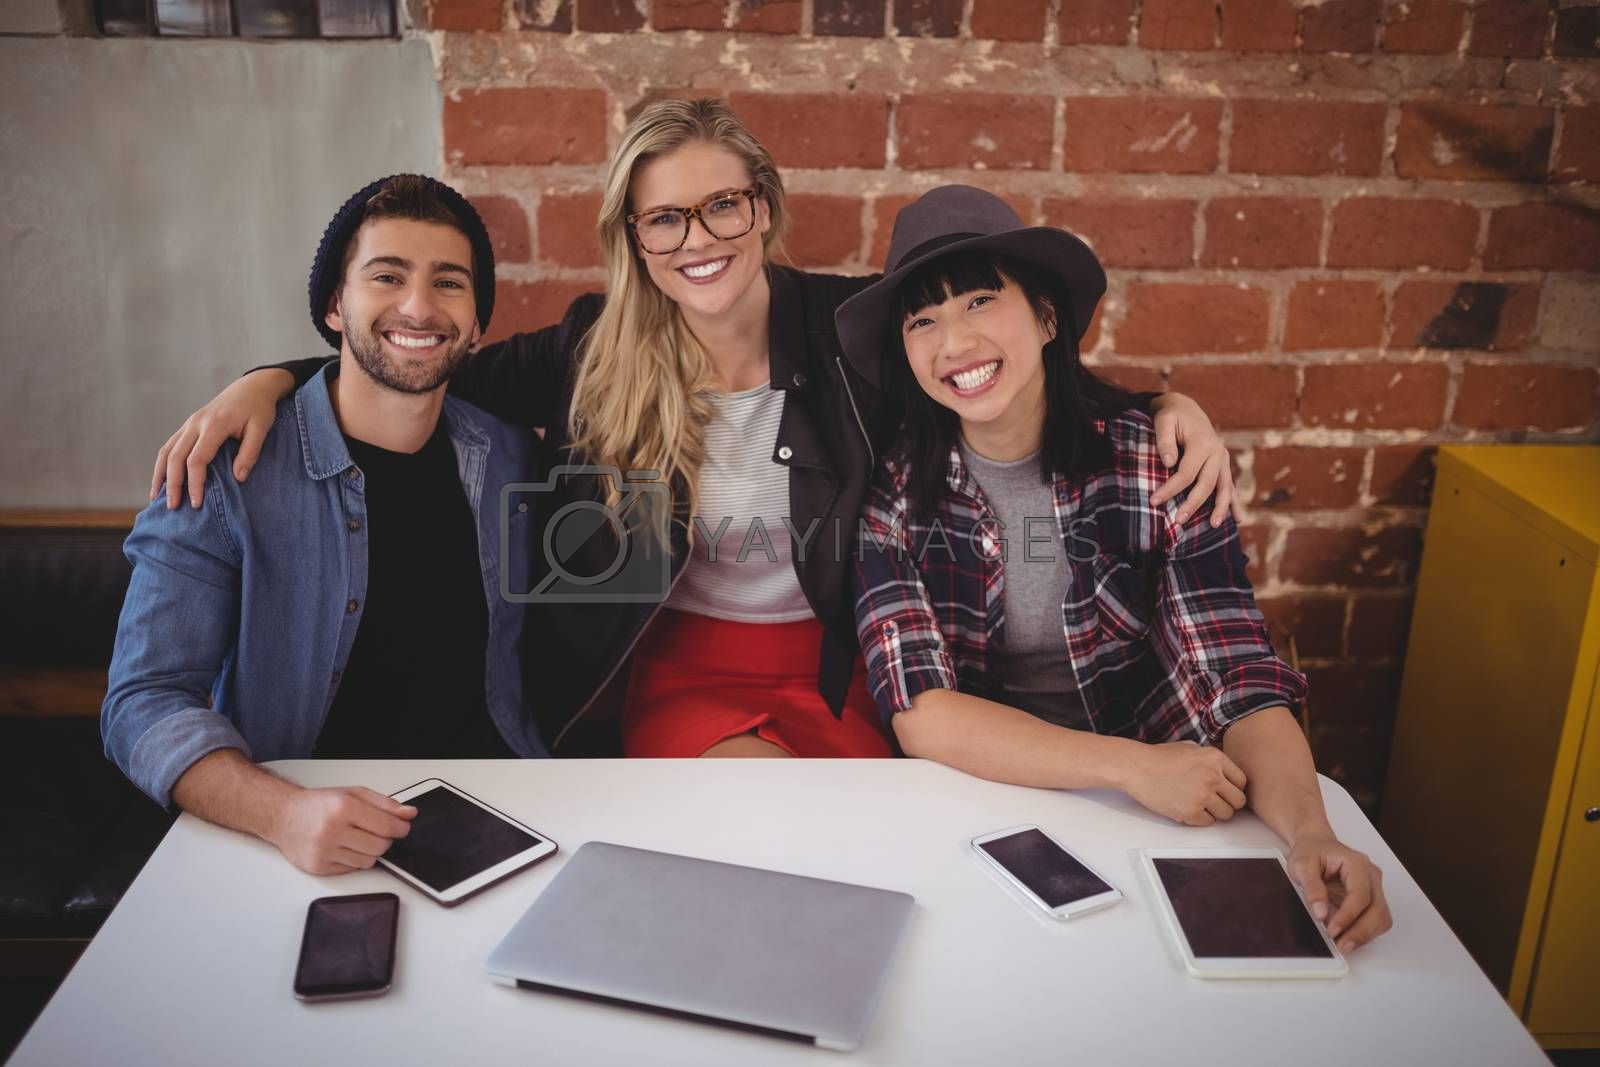 Portrait of smiling creative team sitting with technologies at table against brick wall in coffee shop